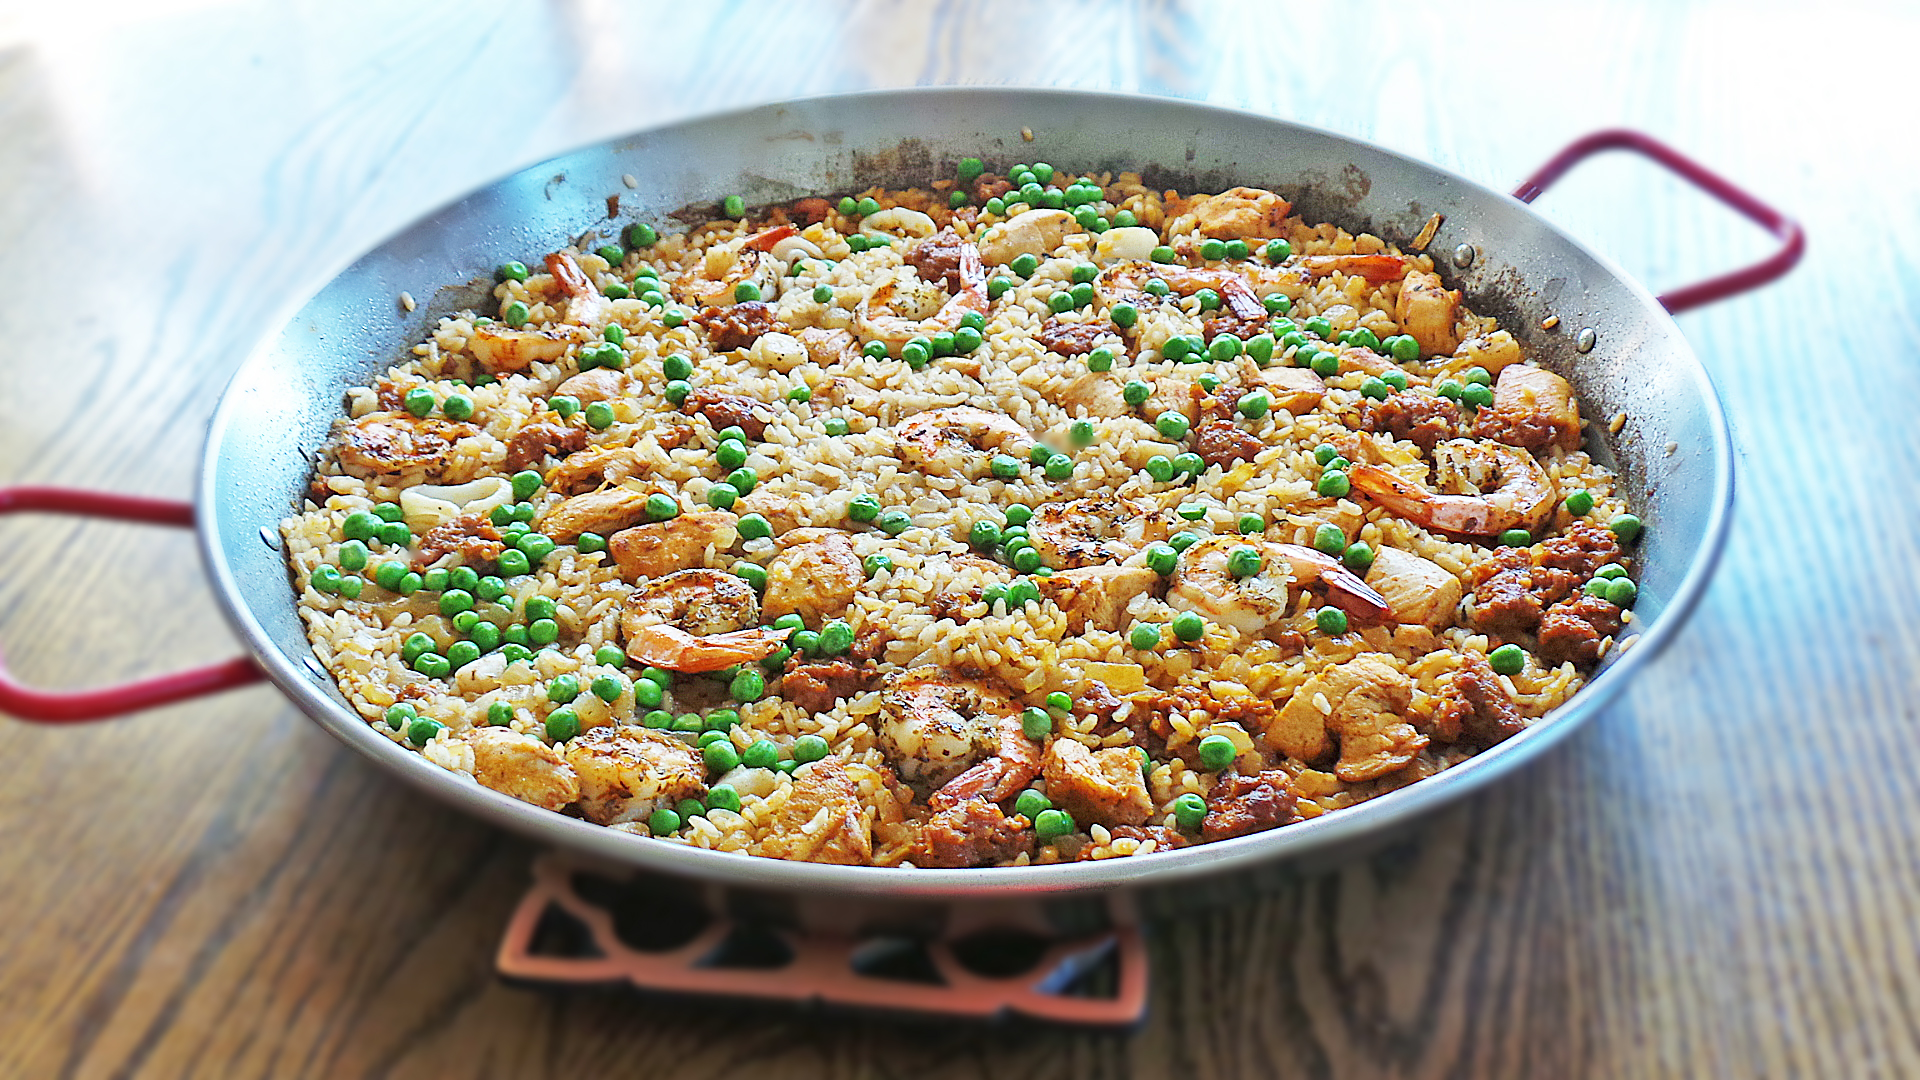 My Ultimate Paella Made w. Shellfish Stock @ Vodka & Biscuits